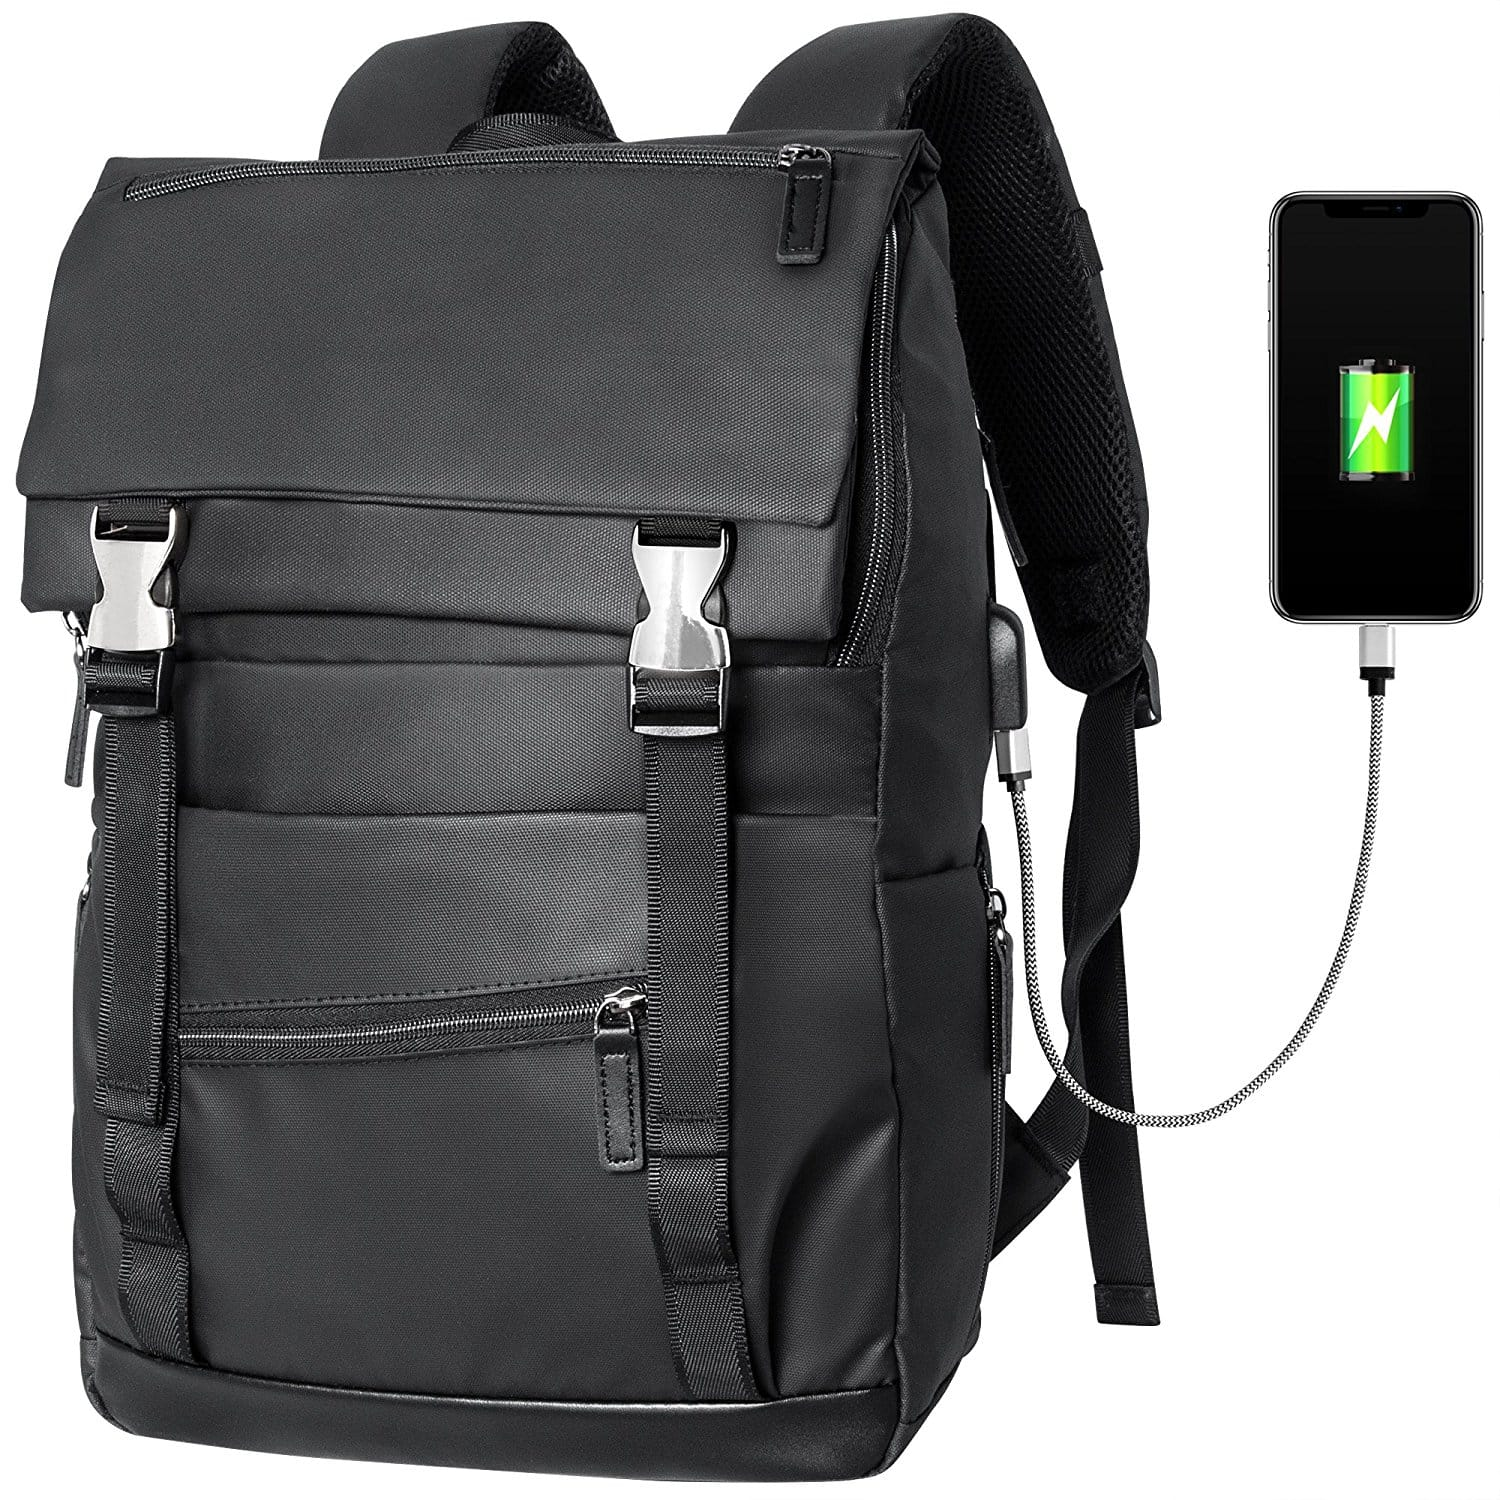 Veckle Waterproof 24.5L Laptop Backpack with USB Charging Port $19.99 free shipping w/Prime